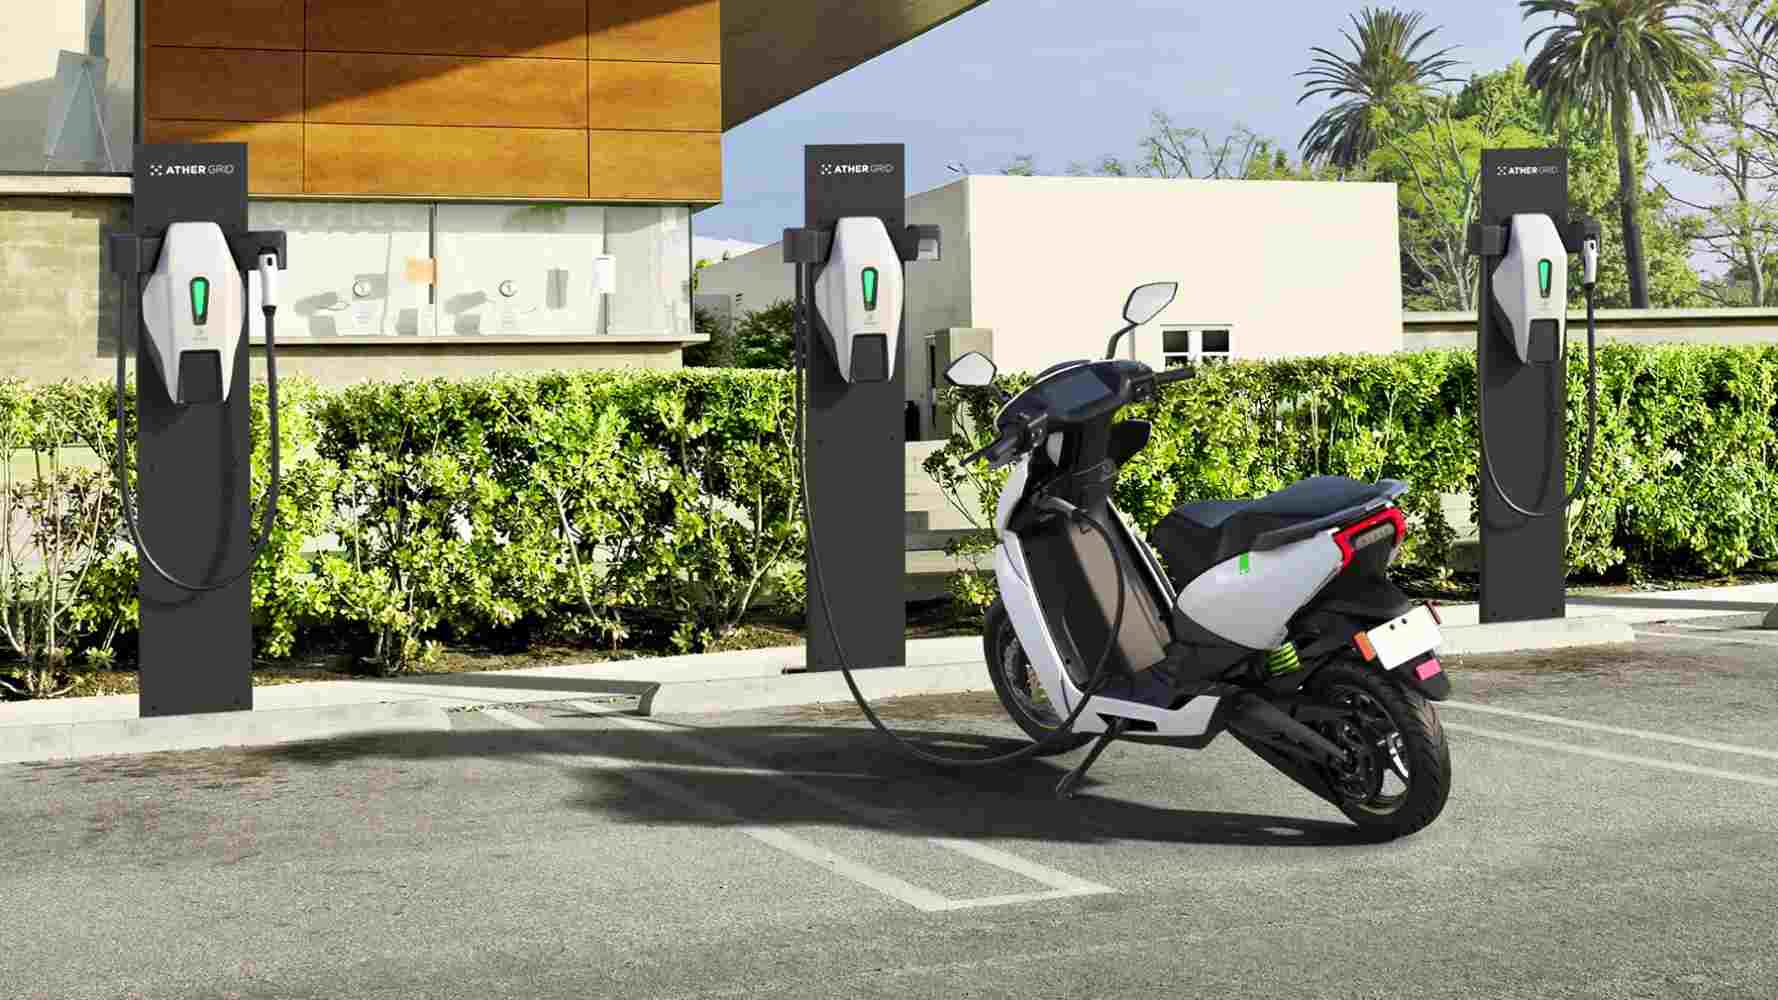 Ather Energy is targeting installation of 500 fast-charging points across India by April 2022. Image: Ather Energy